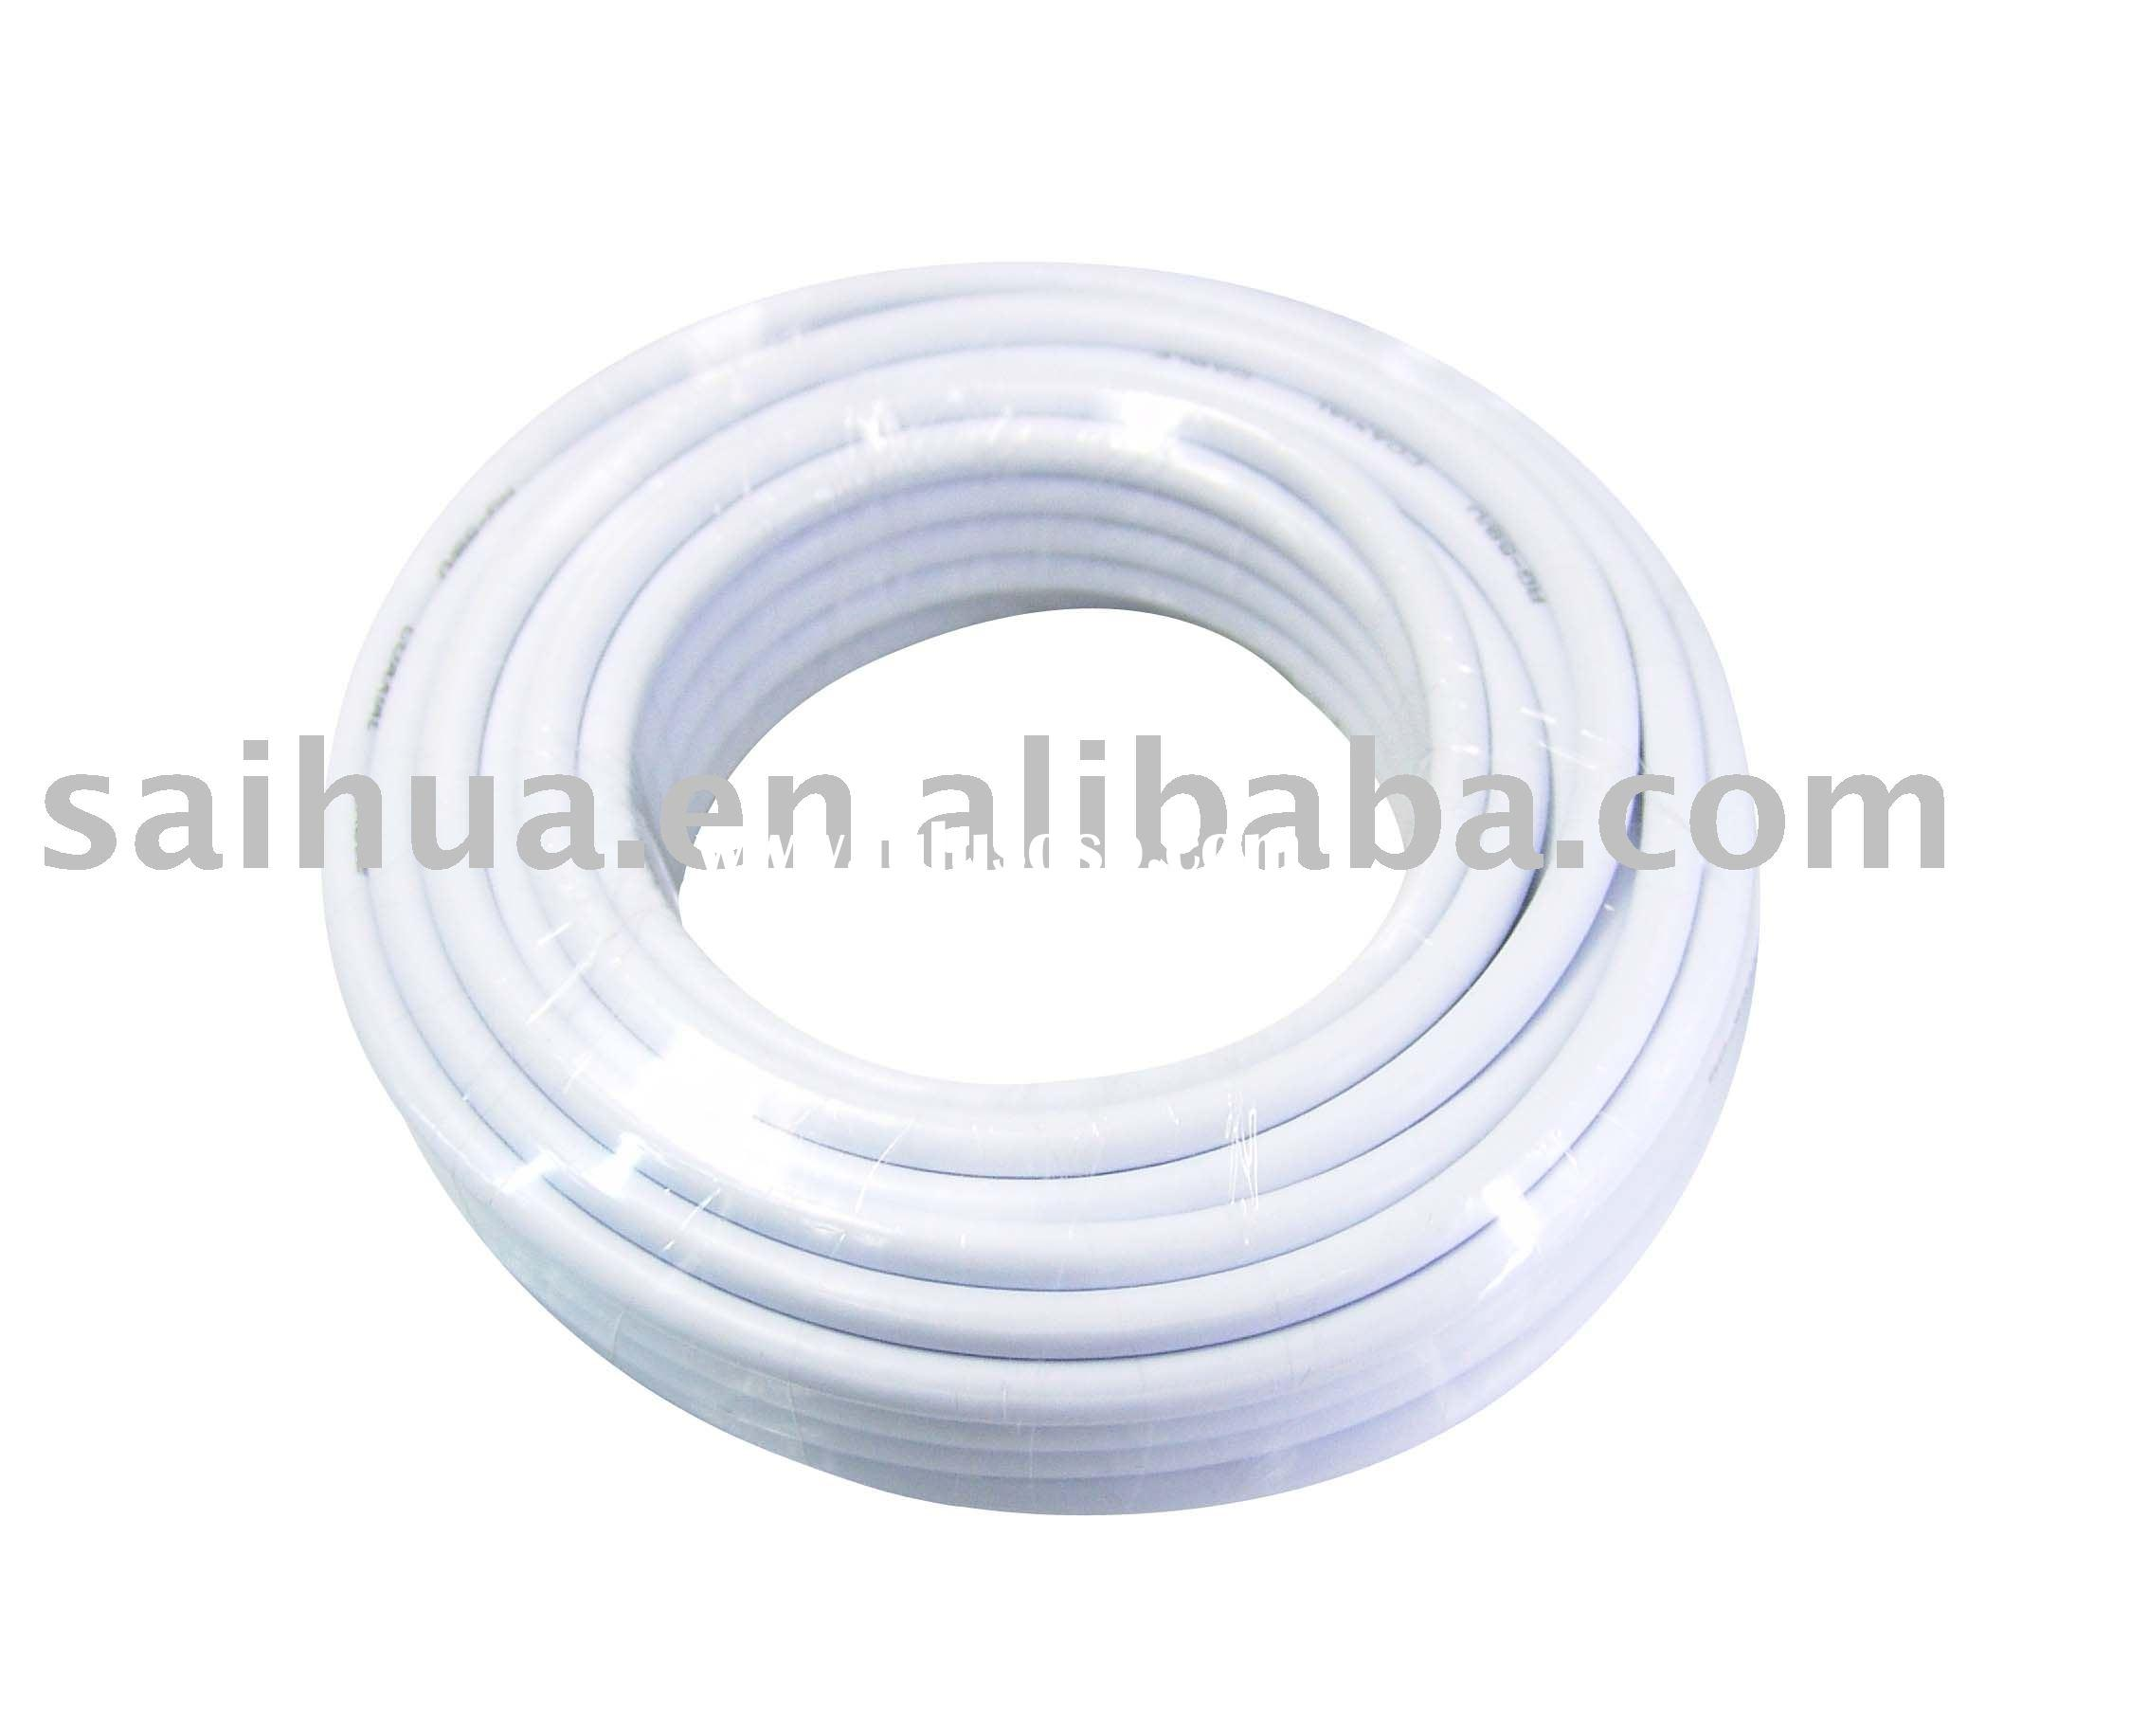 RG6 Cable Coaxial Cable